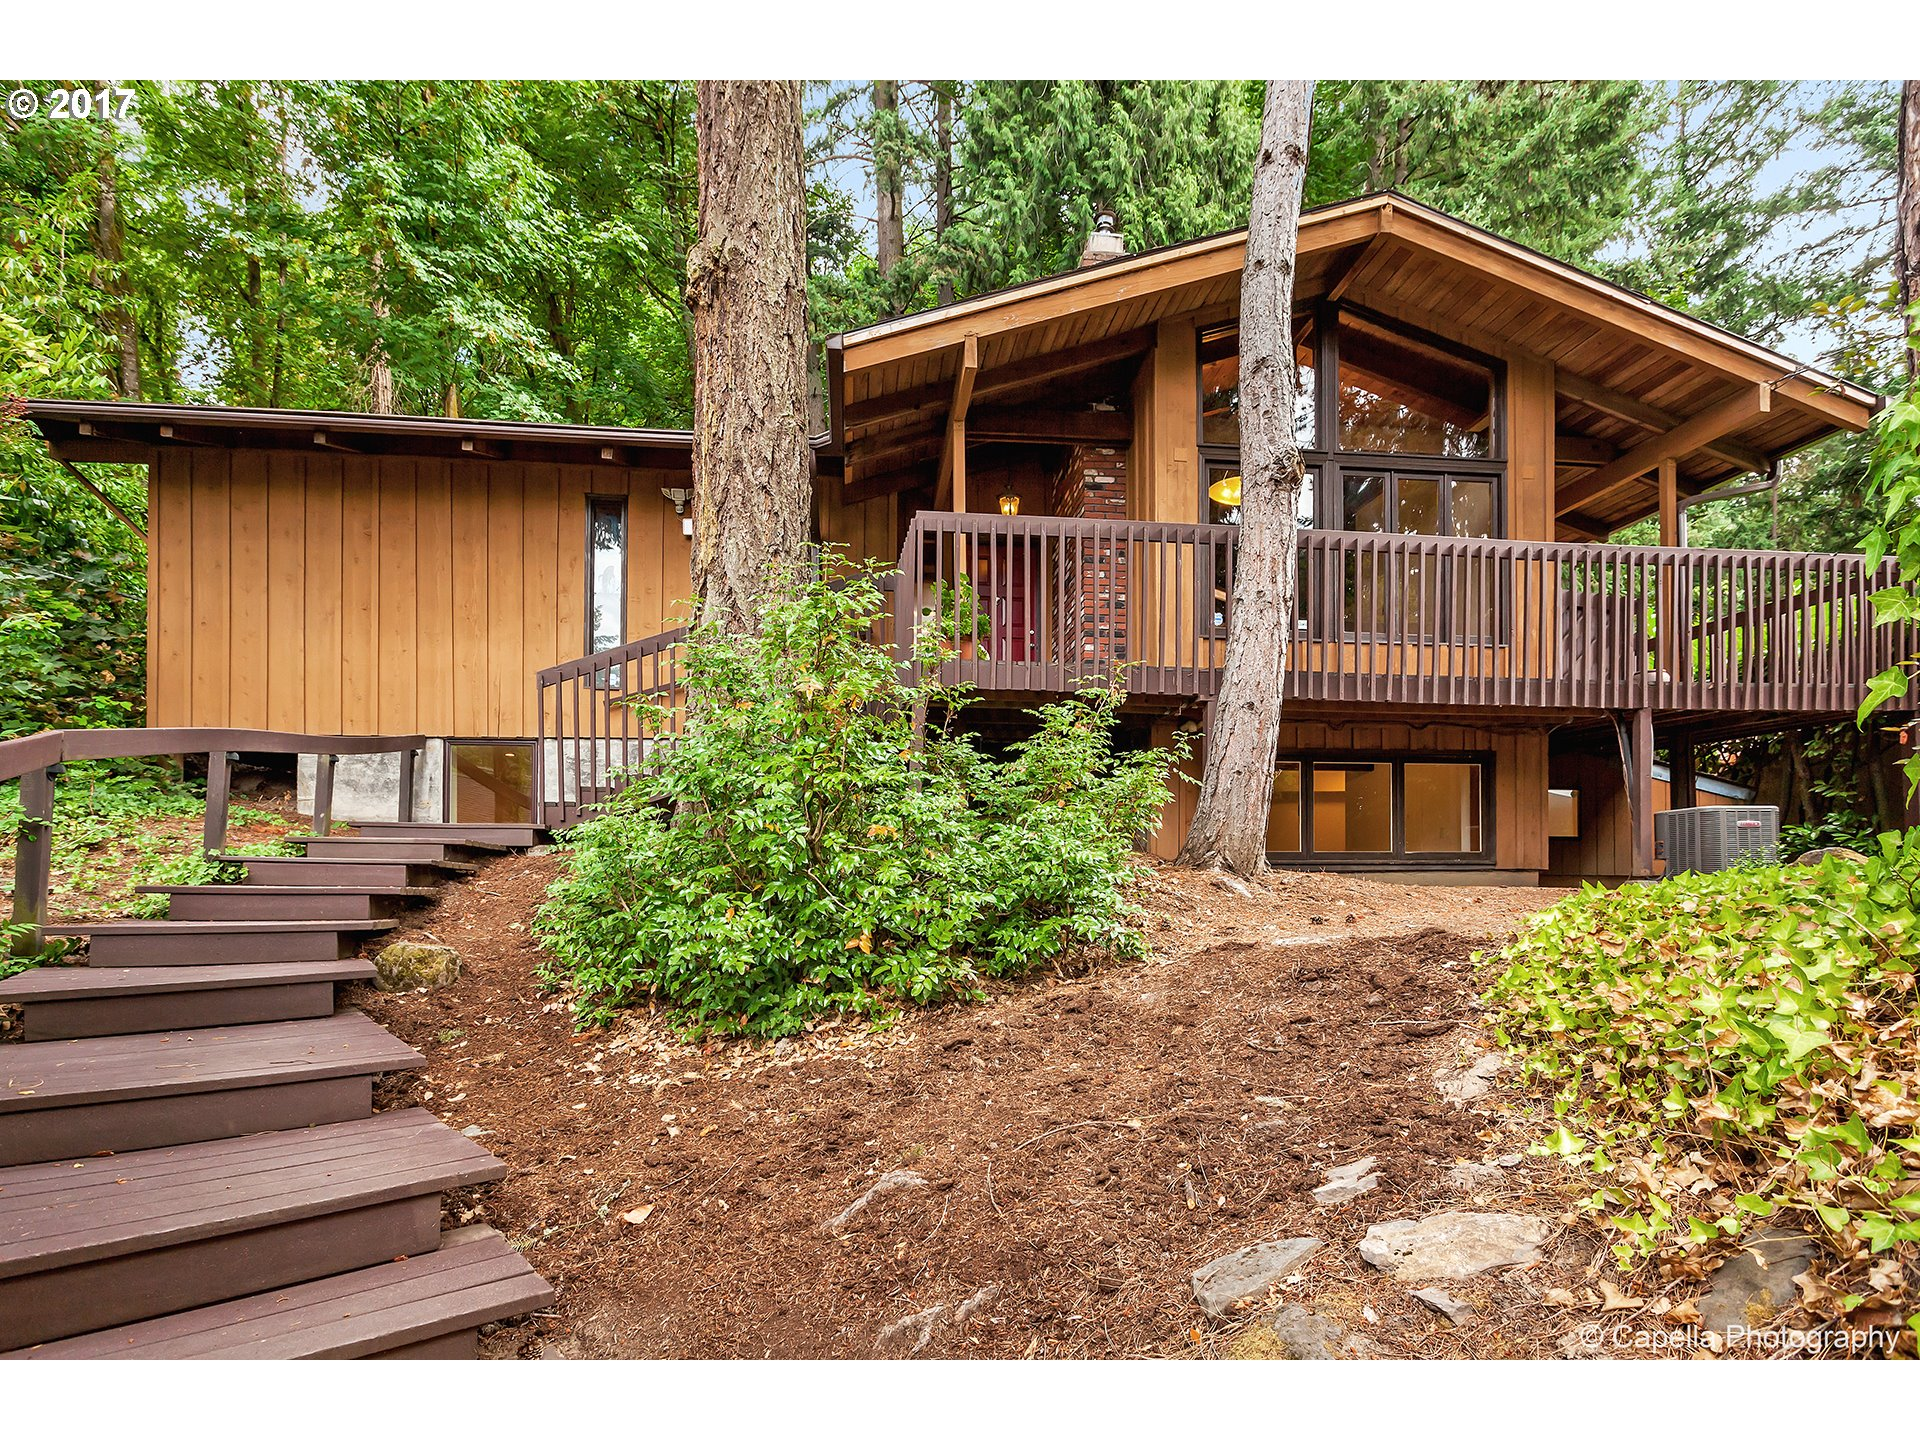 OPEN HOUSES: SAT/SUN SEPT 23RD/24TH FROM 12-3PM. Don't miss this Mid Century Modern home in park-like setting nestled in the trees but..only a 10 minute drive to downtown Portland, Intel or Nike. Unique architecture w/ exposed vaulted beams, box-beam ceilings & Skylights. This renovated home has NEW: roof, AC, tile floors, carpet, granite bathrooms counters, electrical panel, 5-point wiring for sound, lighting, plumbing, & MORE. NO HOA!